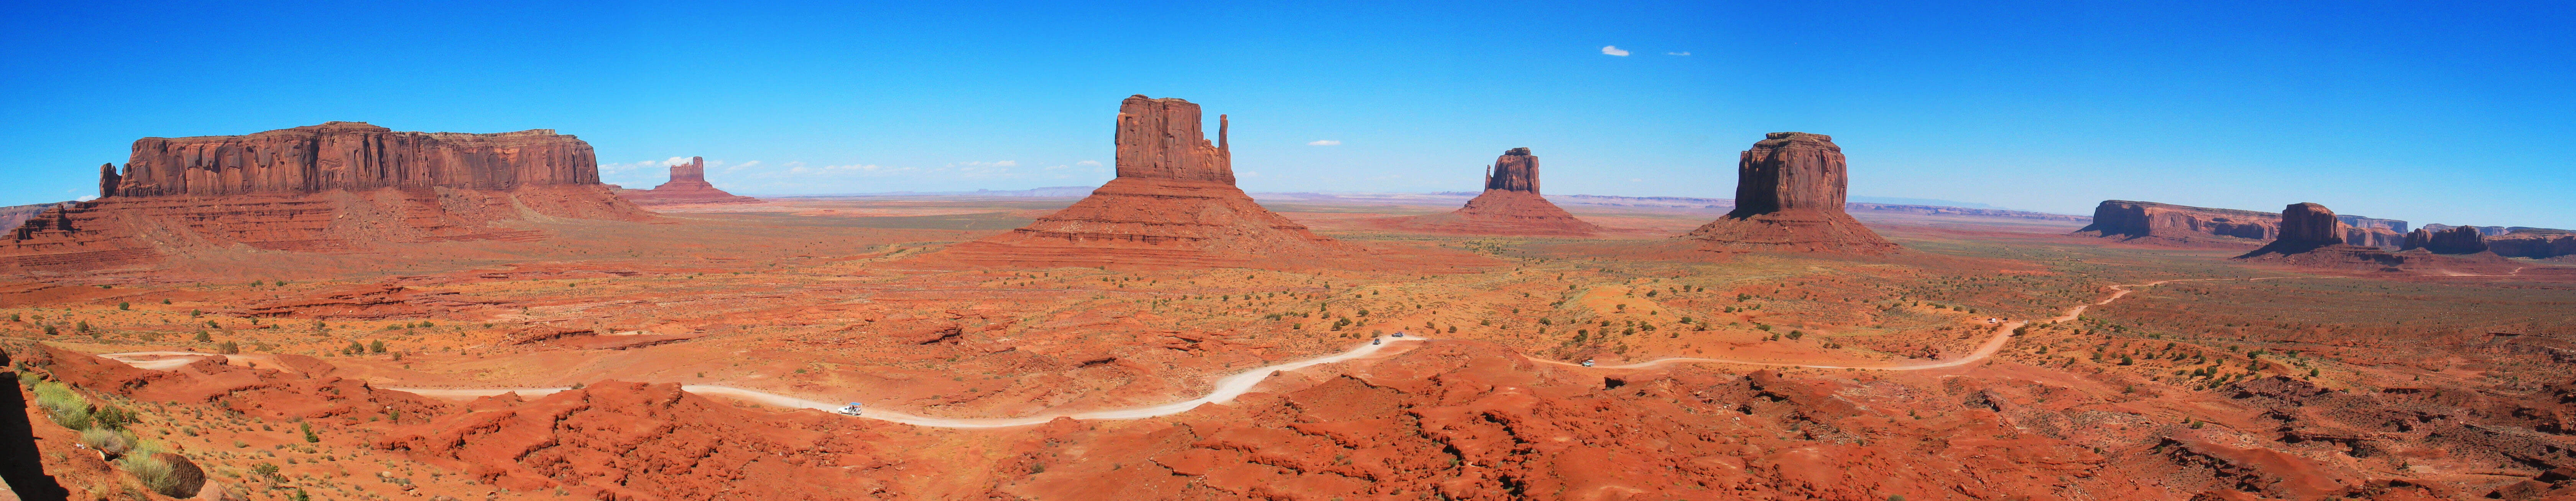 10 Movies Where You've Seen Monument Valley